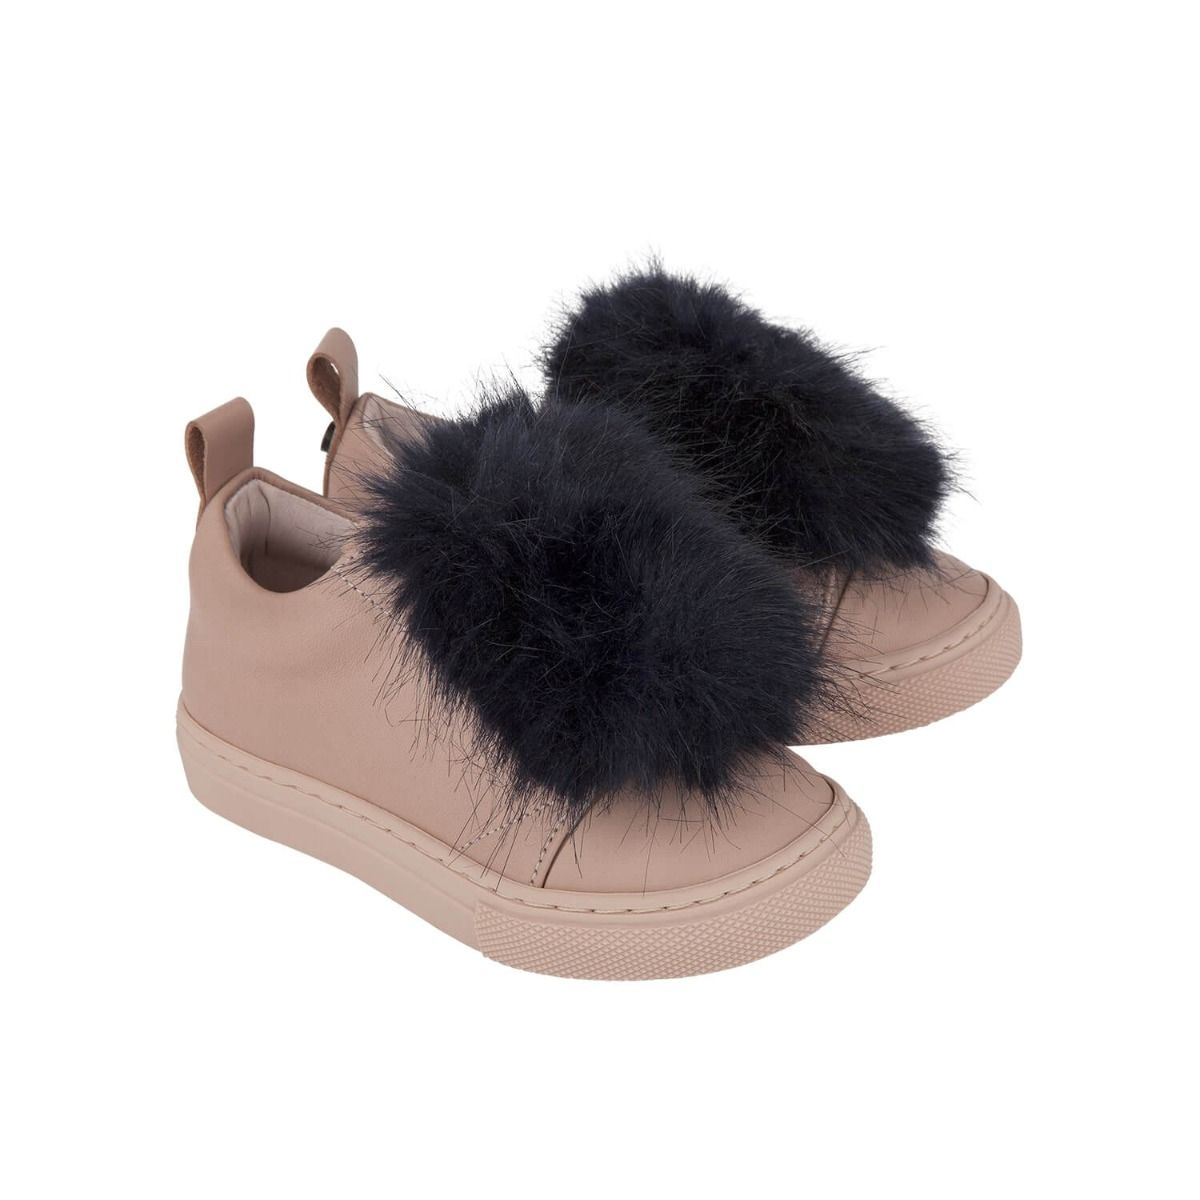 Baby and girl's sneakers in pale pink leather with dark blue fur applique